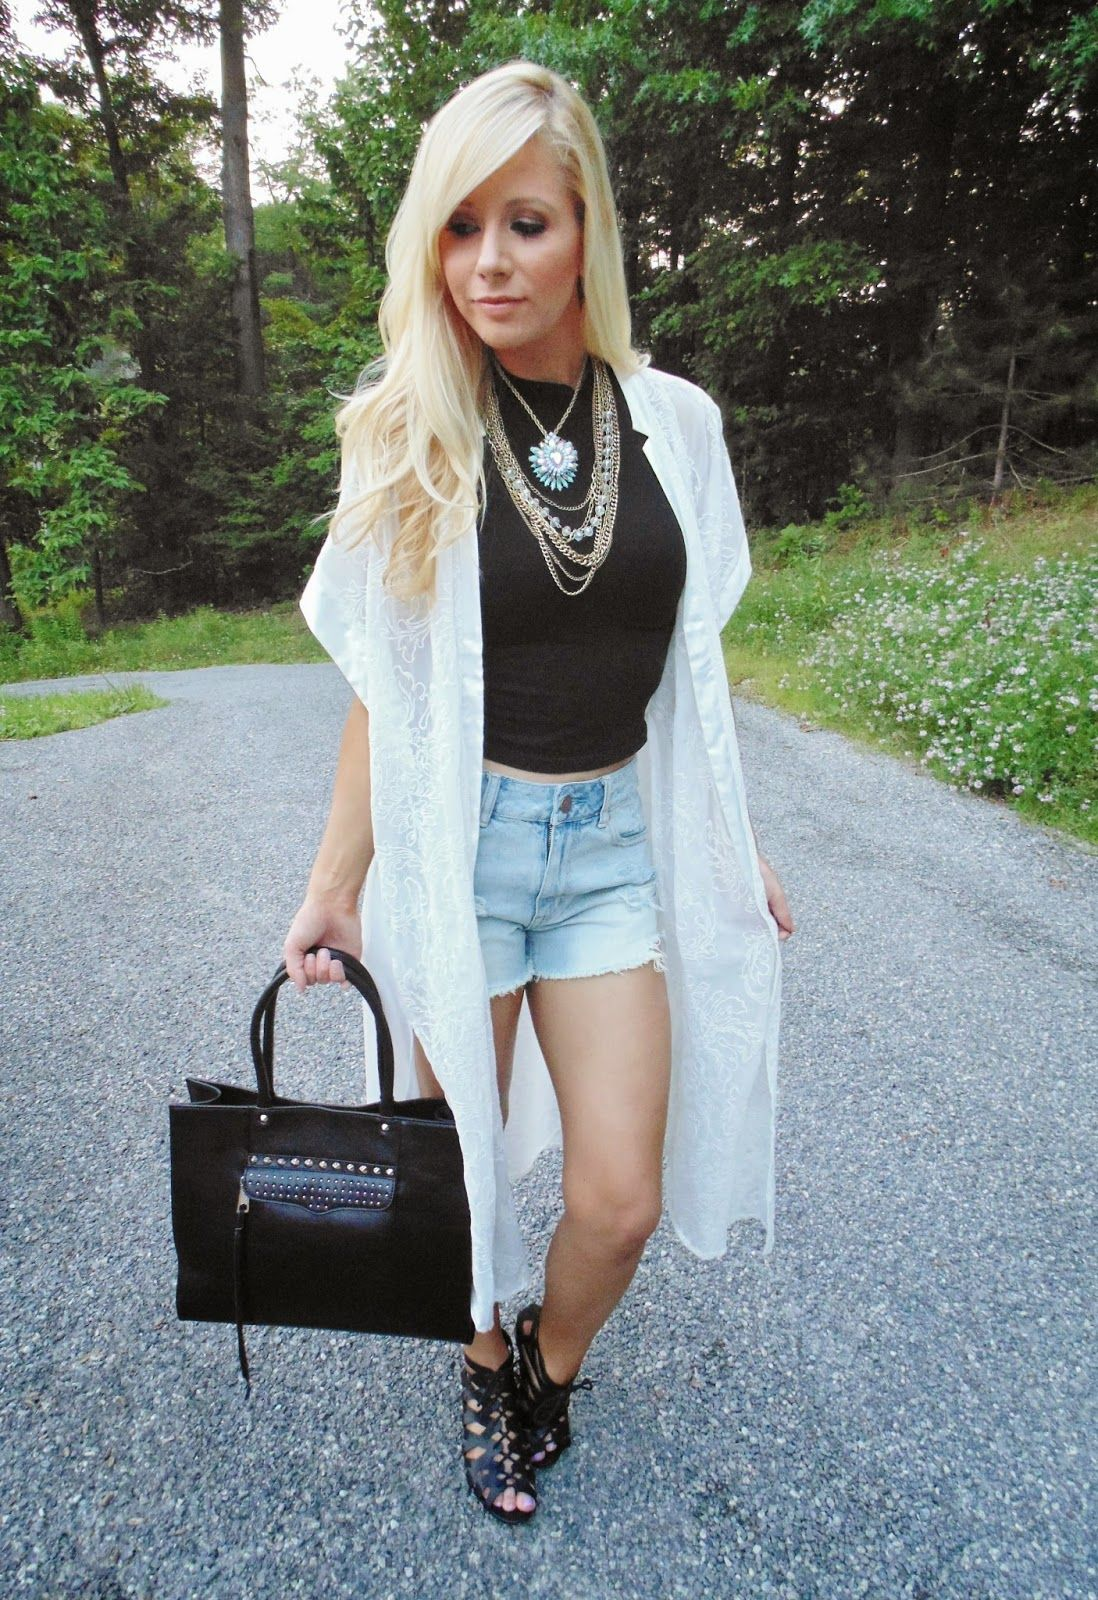 Women's White Lace Open Cardigan, Black Cropped Top, Light Blue ...